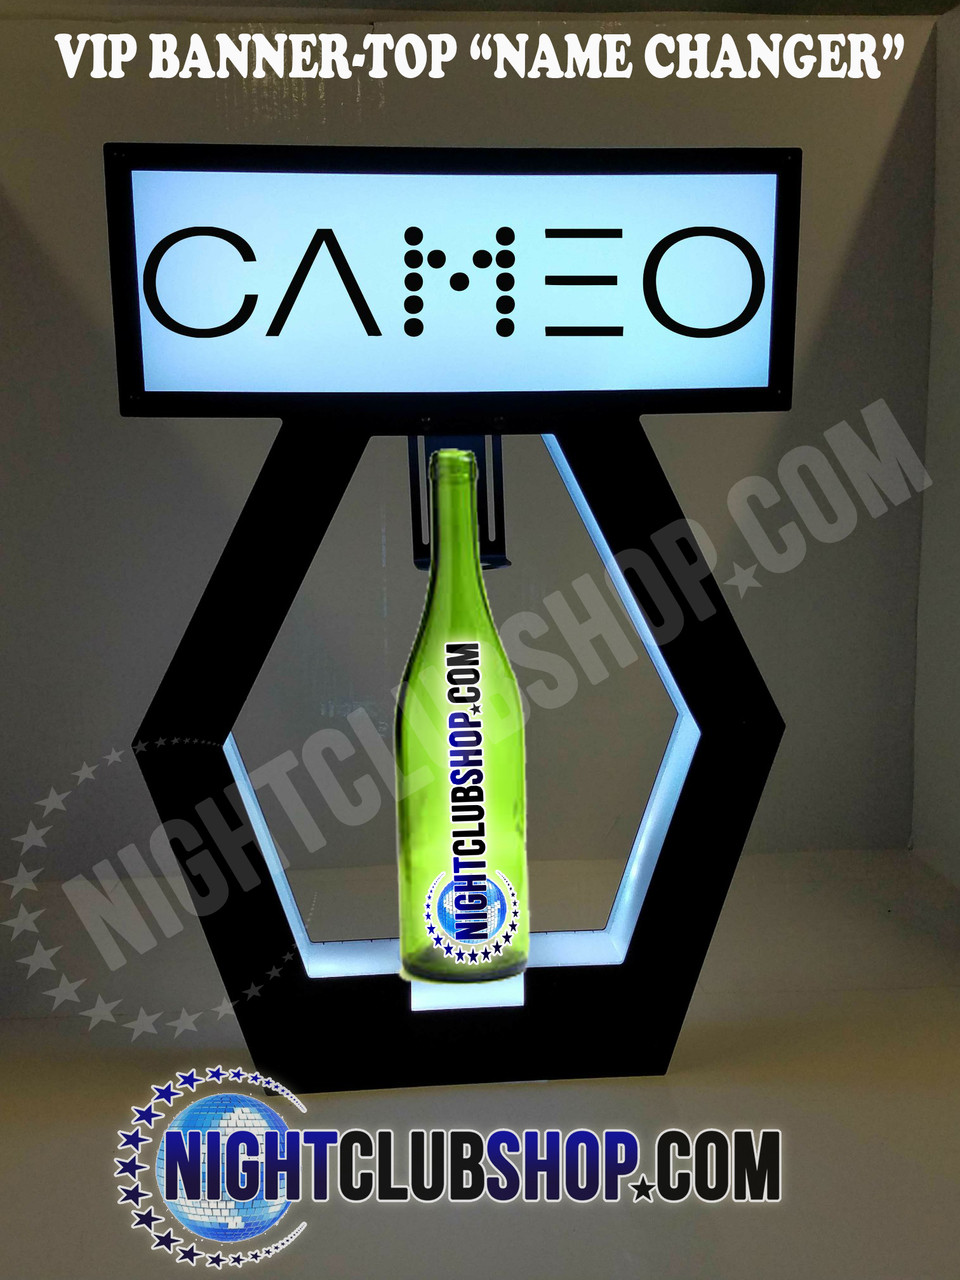 Nightclub_VIP_Lightbox_Champagne_Liquor_Tray_interchangeable_Bottle_service_carrier_holder_tray_Presenter_caddie_caddy_Banner_Top_LED_Sign